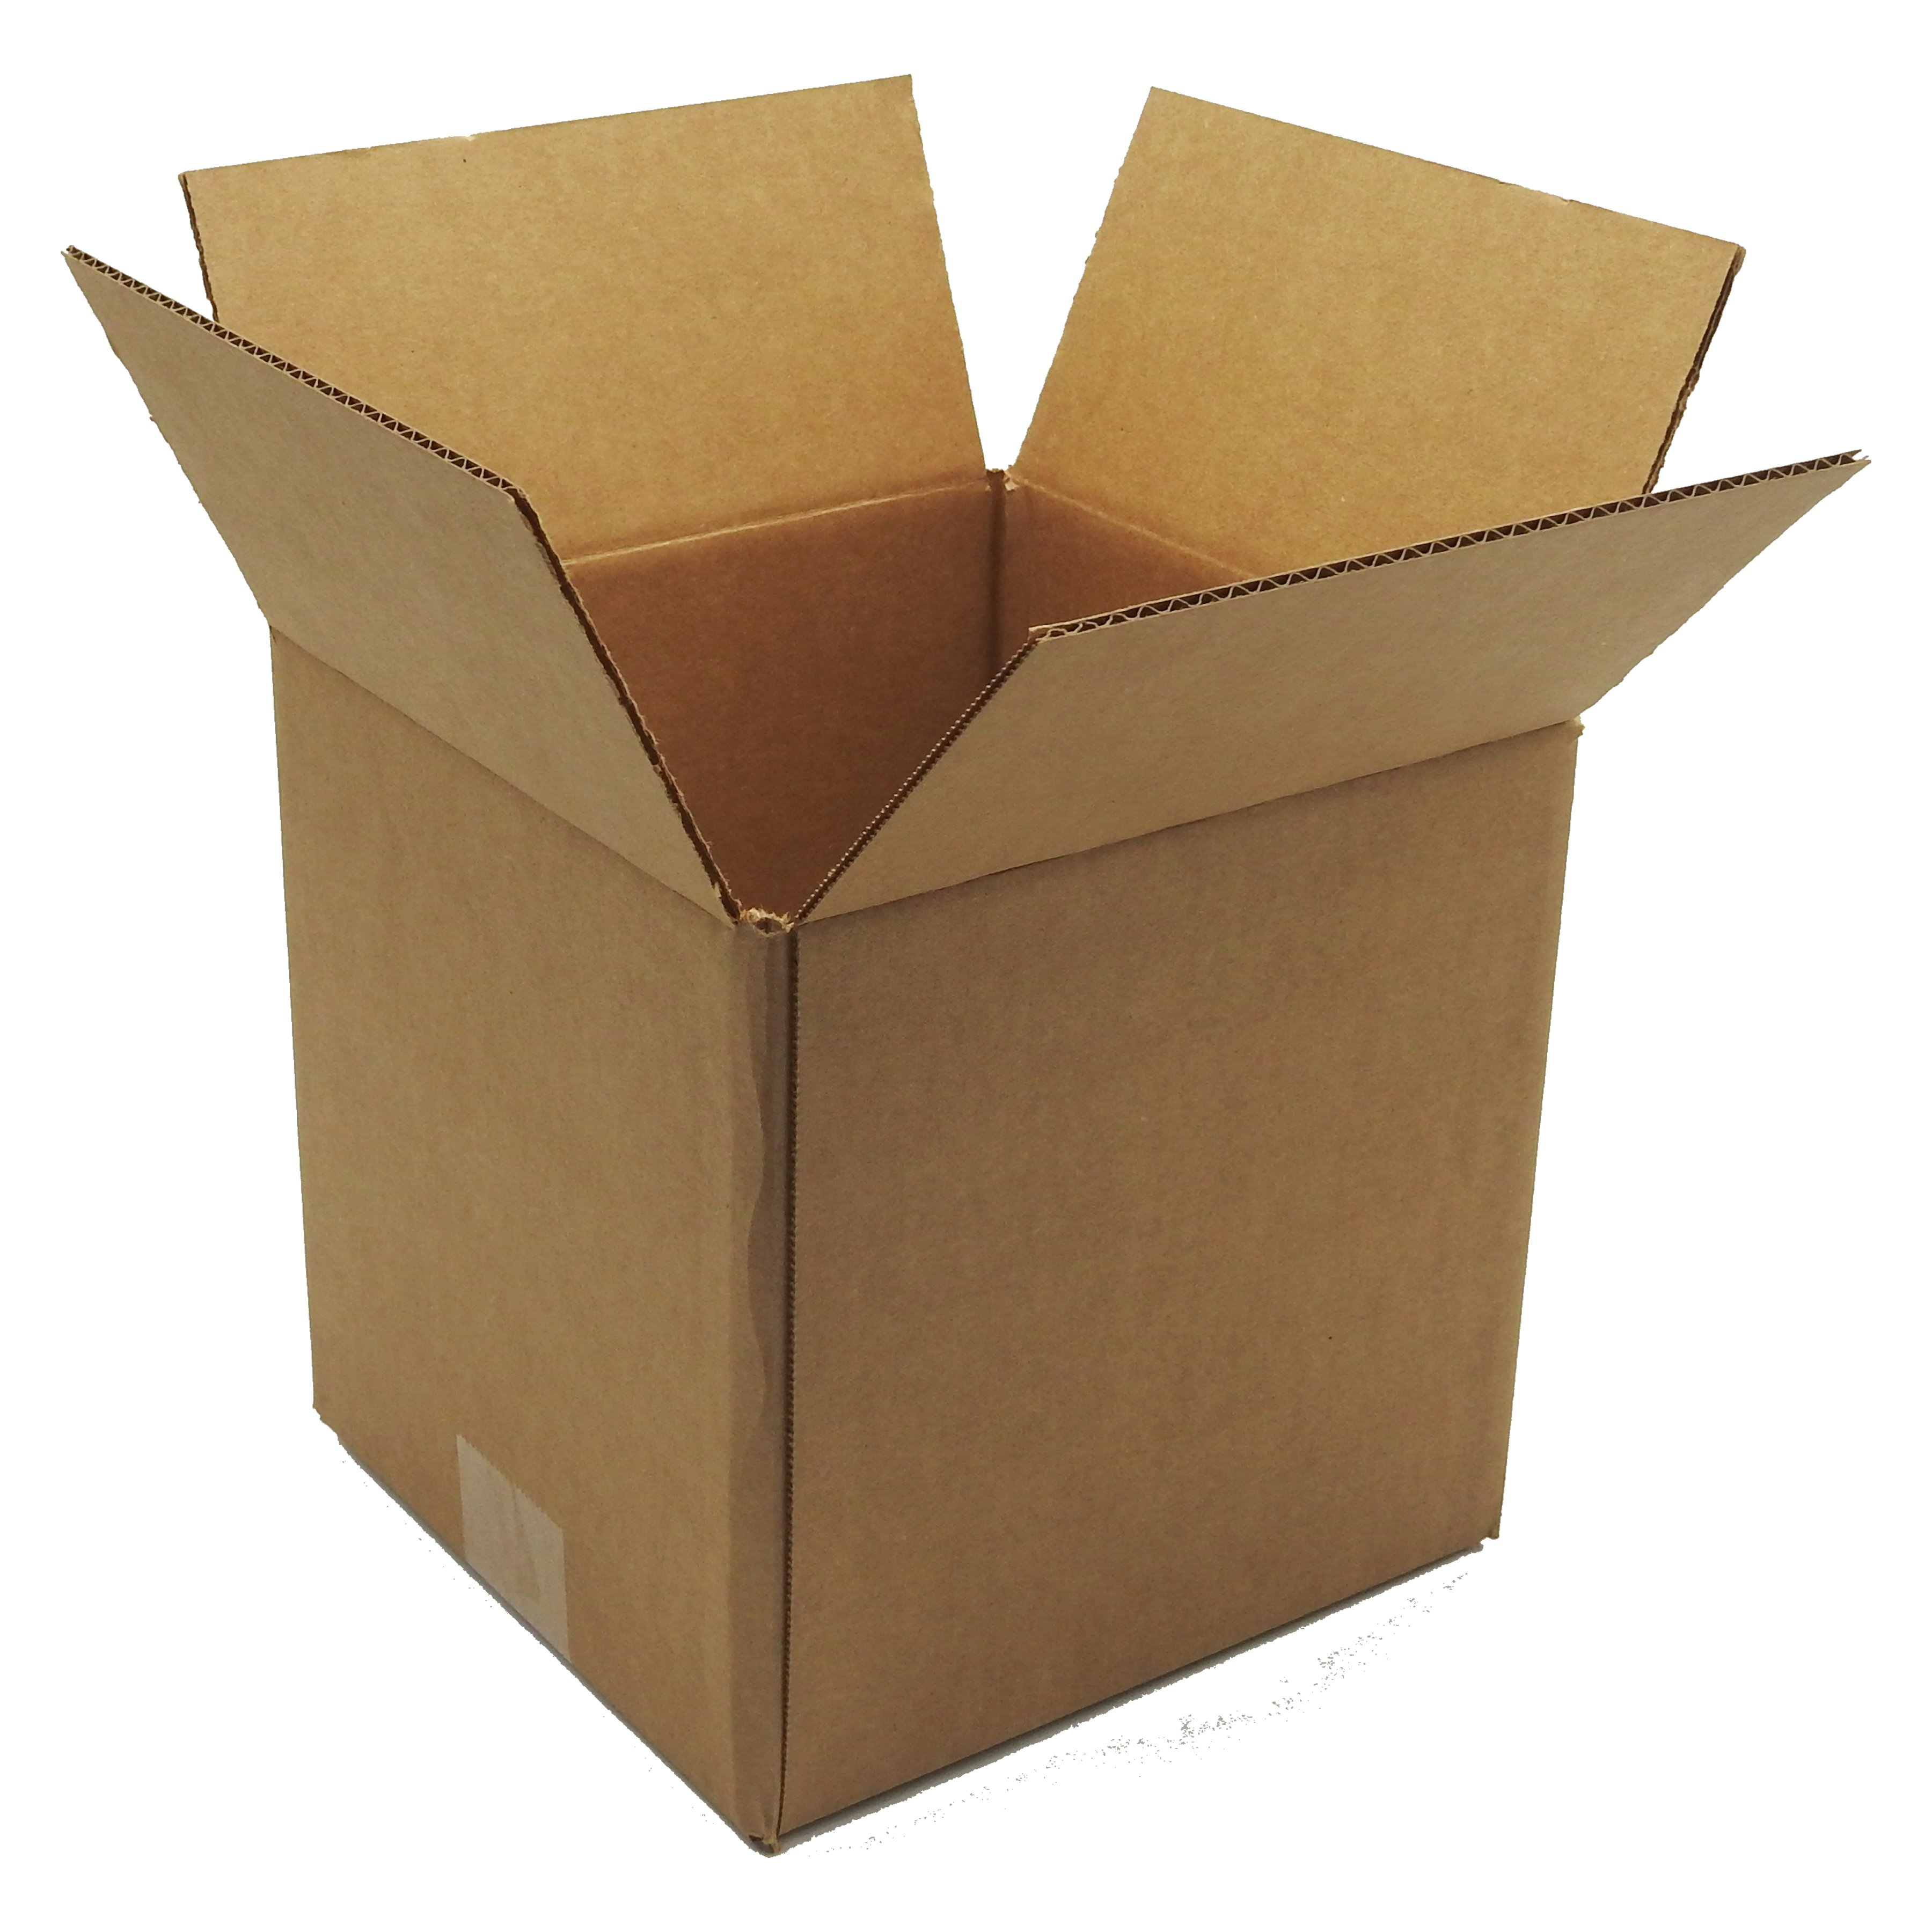 100 8x8x8 Corrugated Cardboard Shipping Mailing Packing Moving Boxes Box Carton